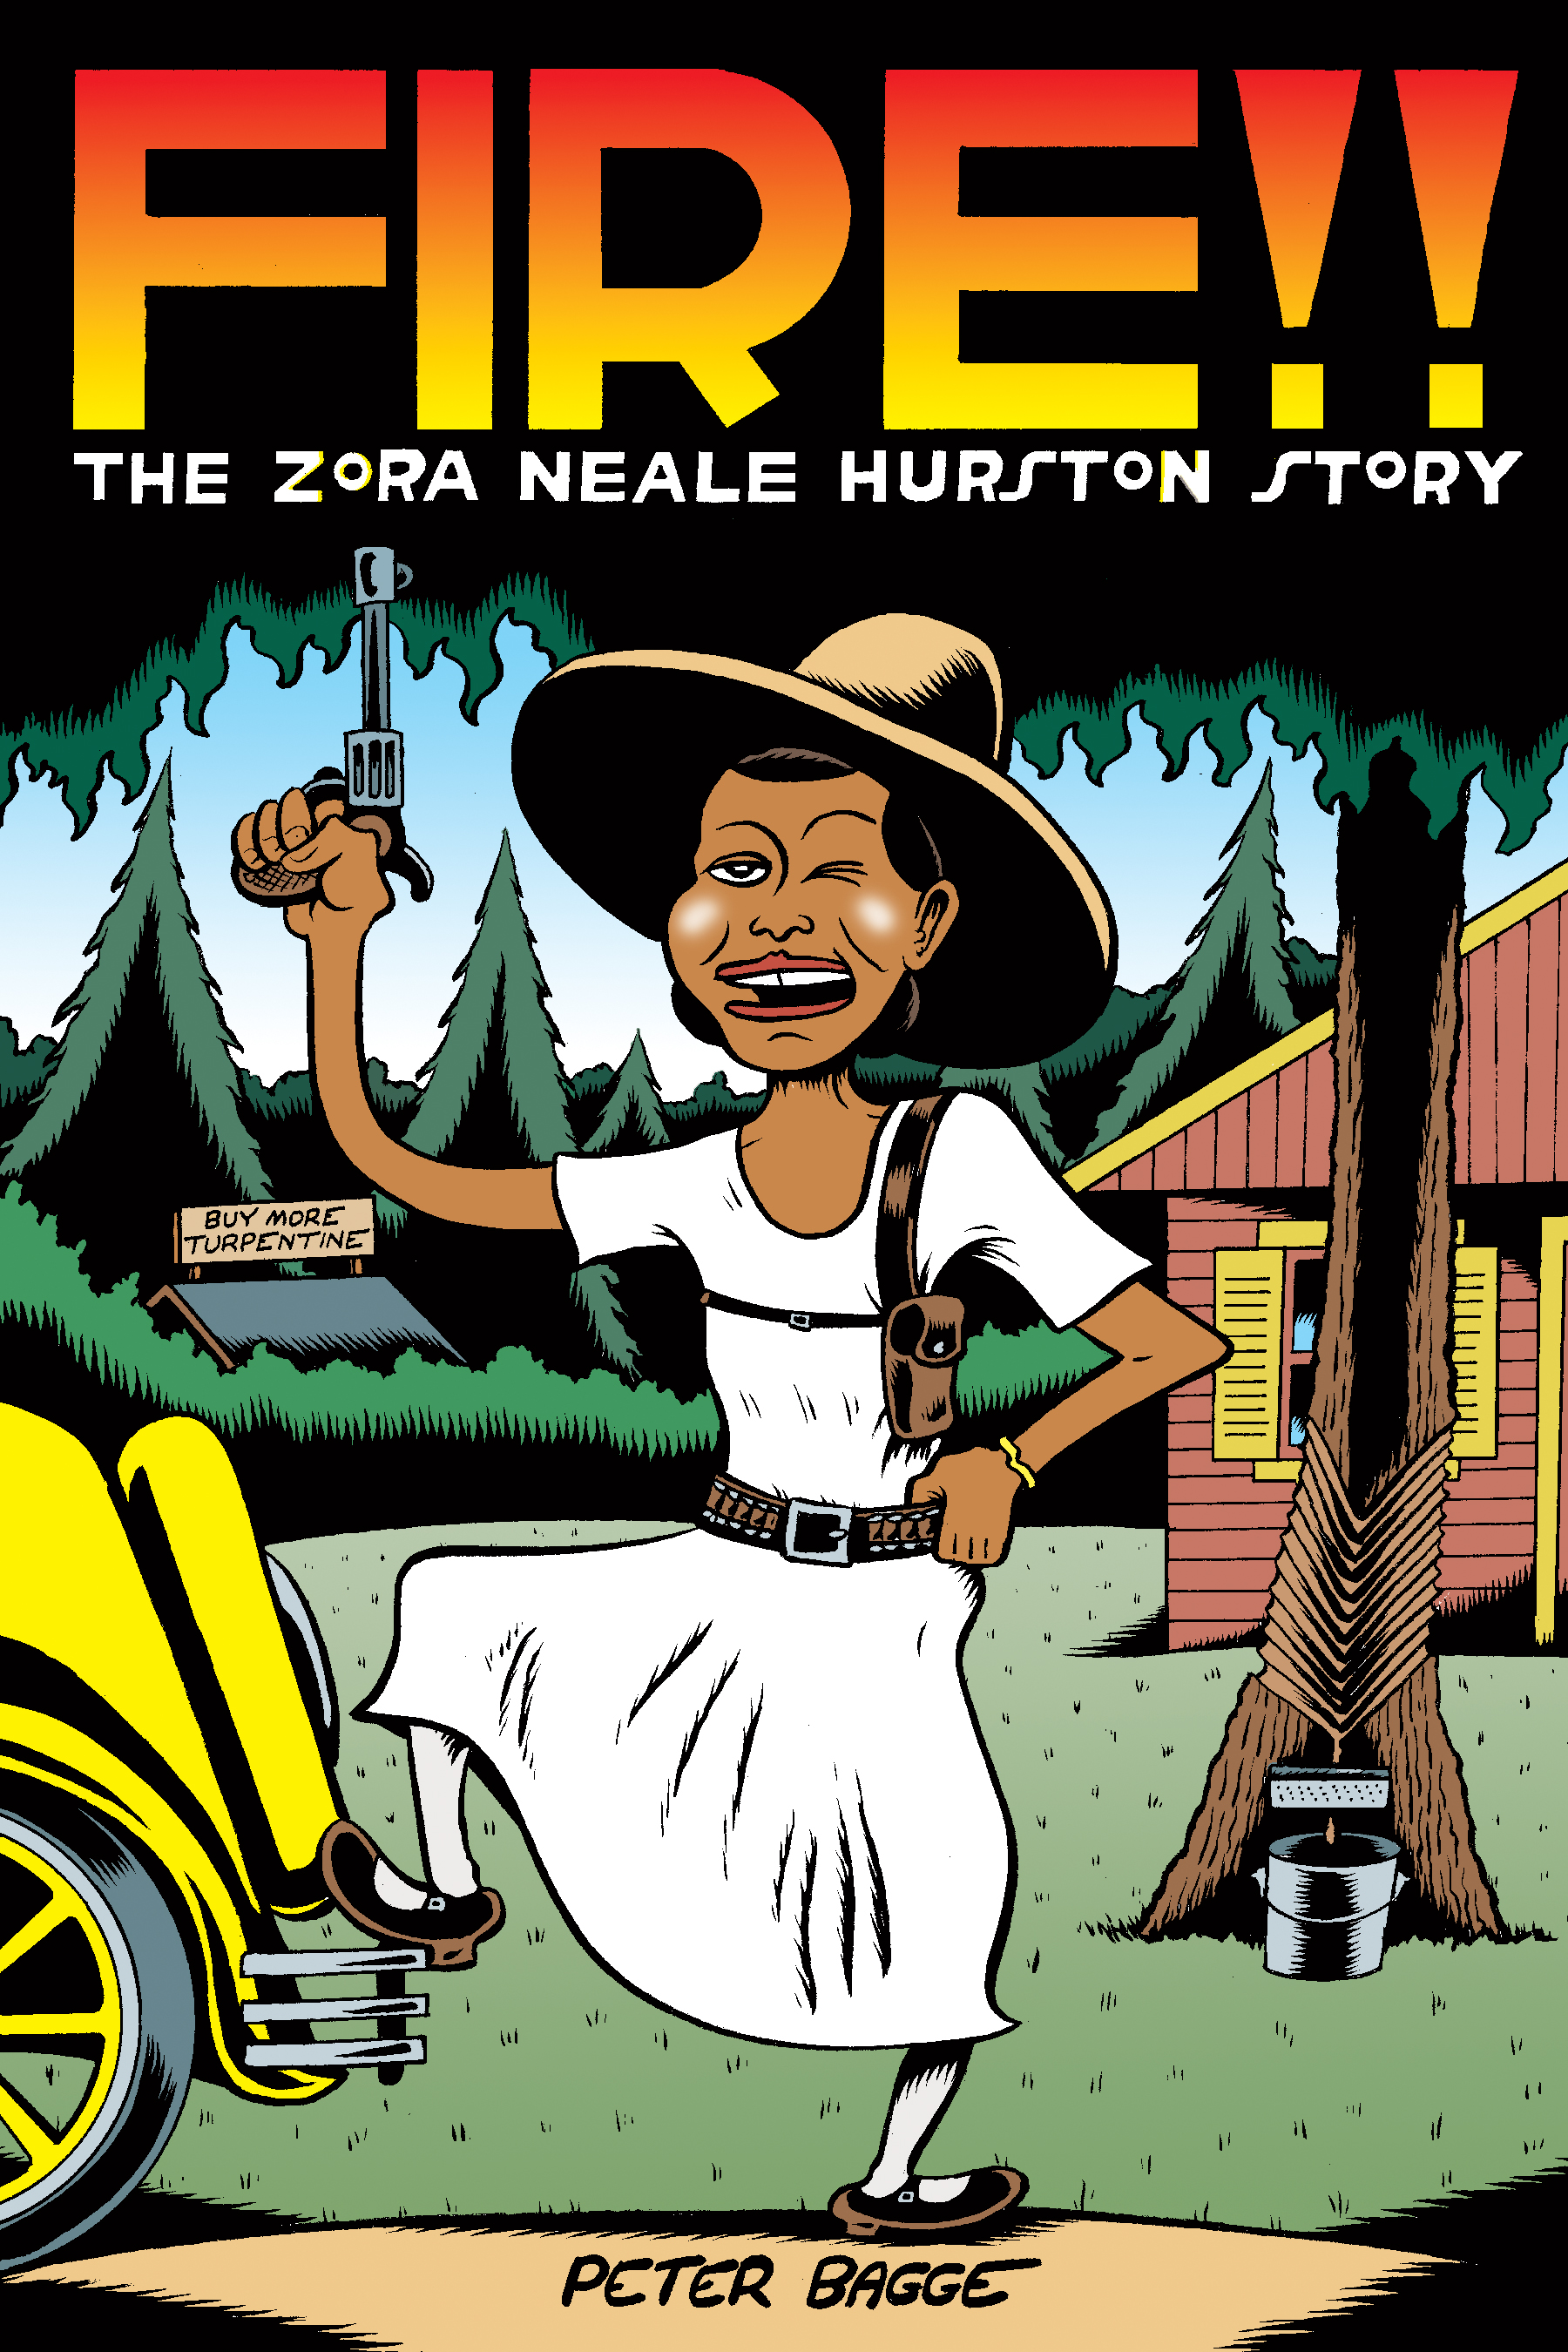 Fire: The Zora Neale Hurston Story (2017) by Peter Bagge.